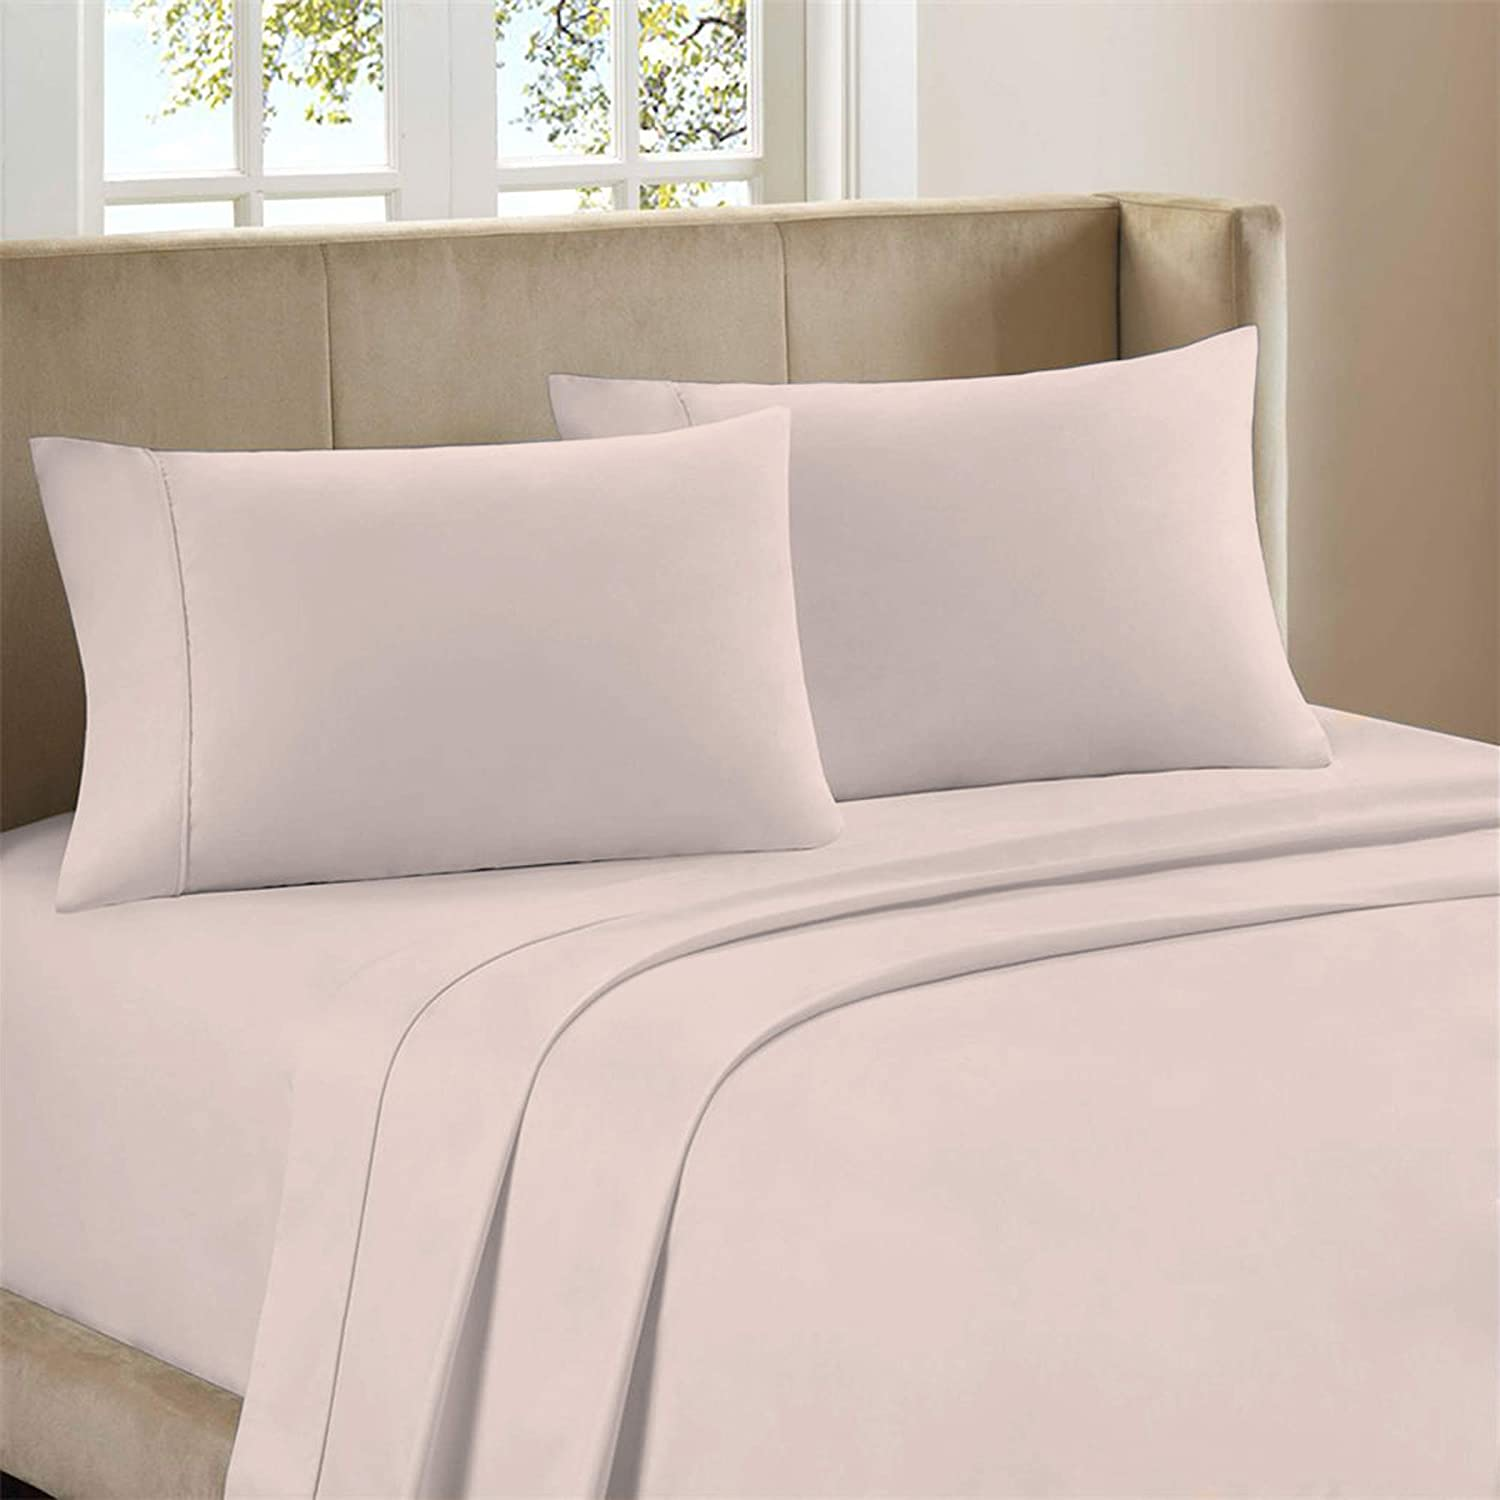 """Premium 400-Thread-Count 100% Cotton 4 Piece Ultimate Percale Bed Sheet Set, Light Pink Full Sheets,Moisture Wicking,Soft Finish, Cool Crisp,Patented Fitted Sheet Fits Upto 18"""" Deep Pocket-Purity Home"""